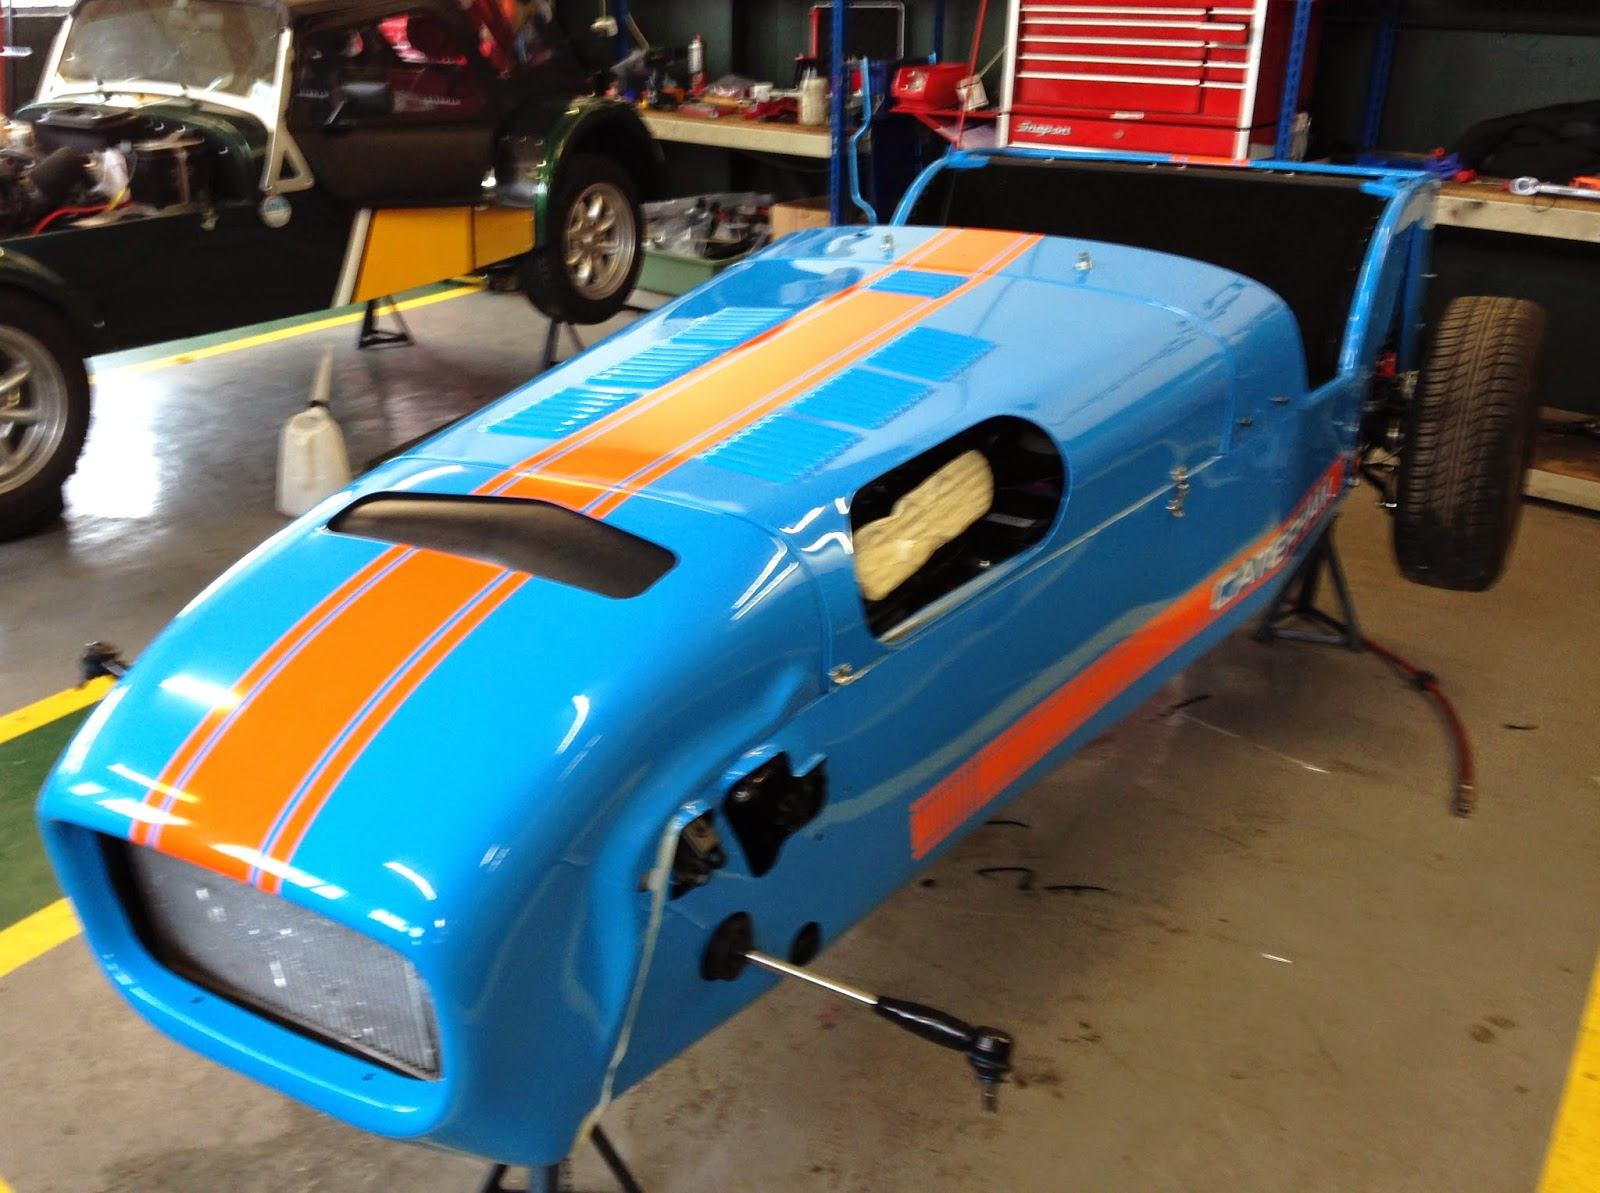 Caterham R500 looking very shiny, now with stone chip protection film and new triple stripe decals.